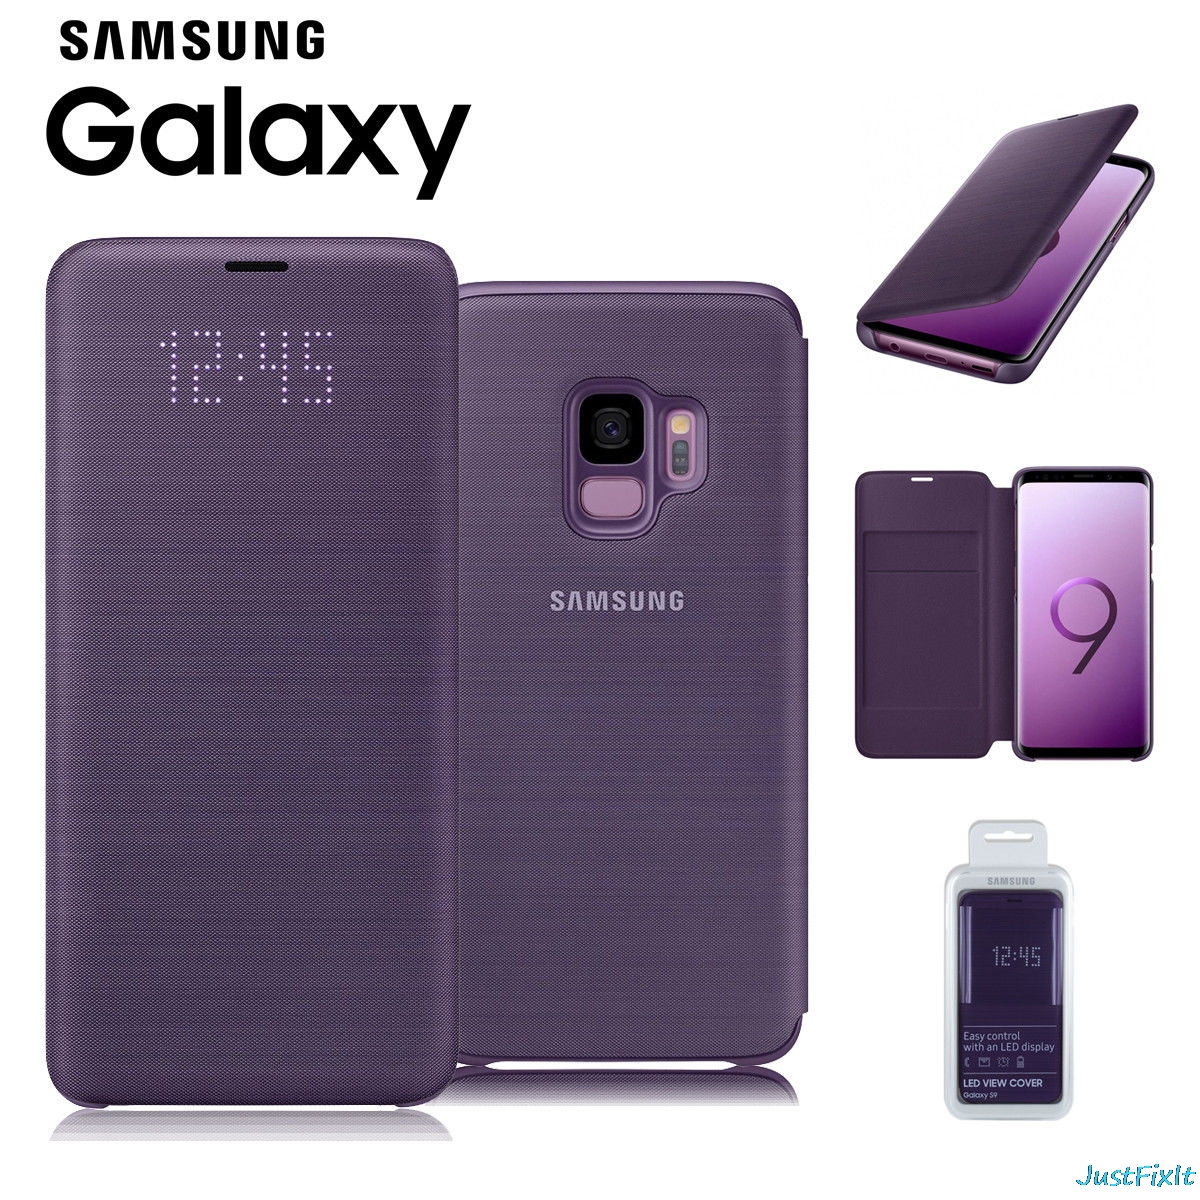 new styles db6e2 94449 US $55.81 5% OFF|LED Smart Leather Case For Samsung Galaxy S9 S9 + S9 Plus  G960 G965 LED Smart VIEW Cover Wallet Flip Case Smart Leather Case-in Flip  ...